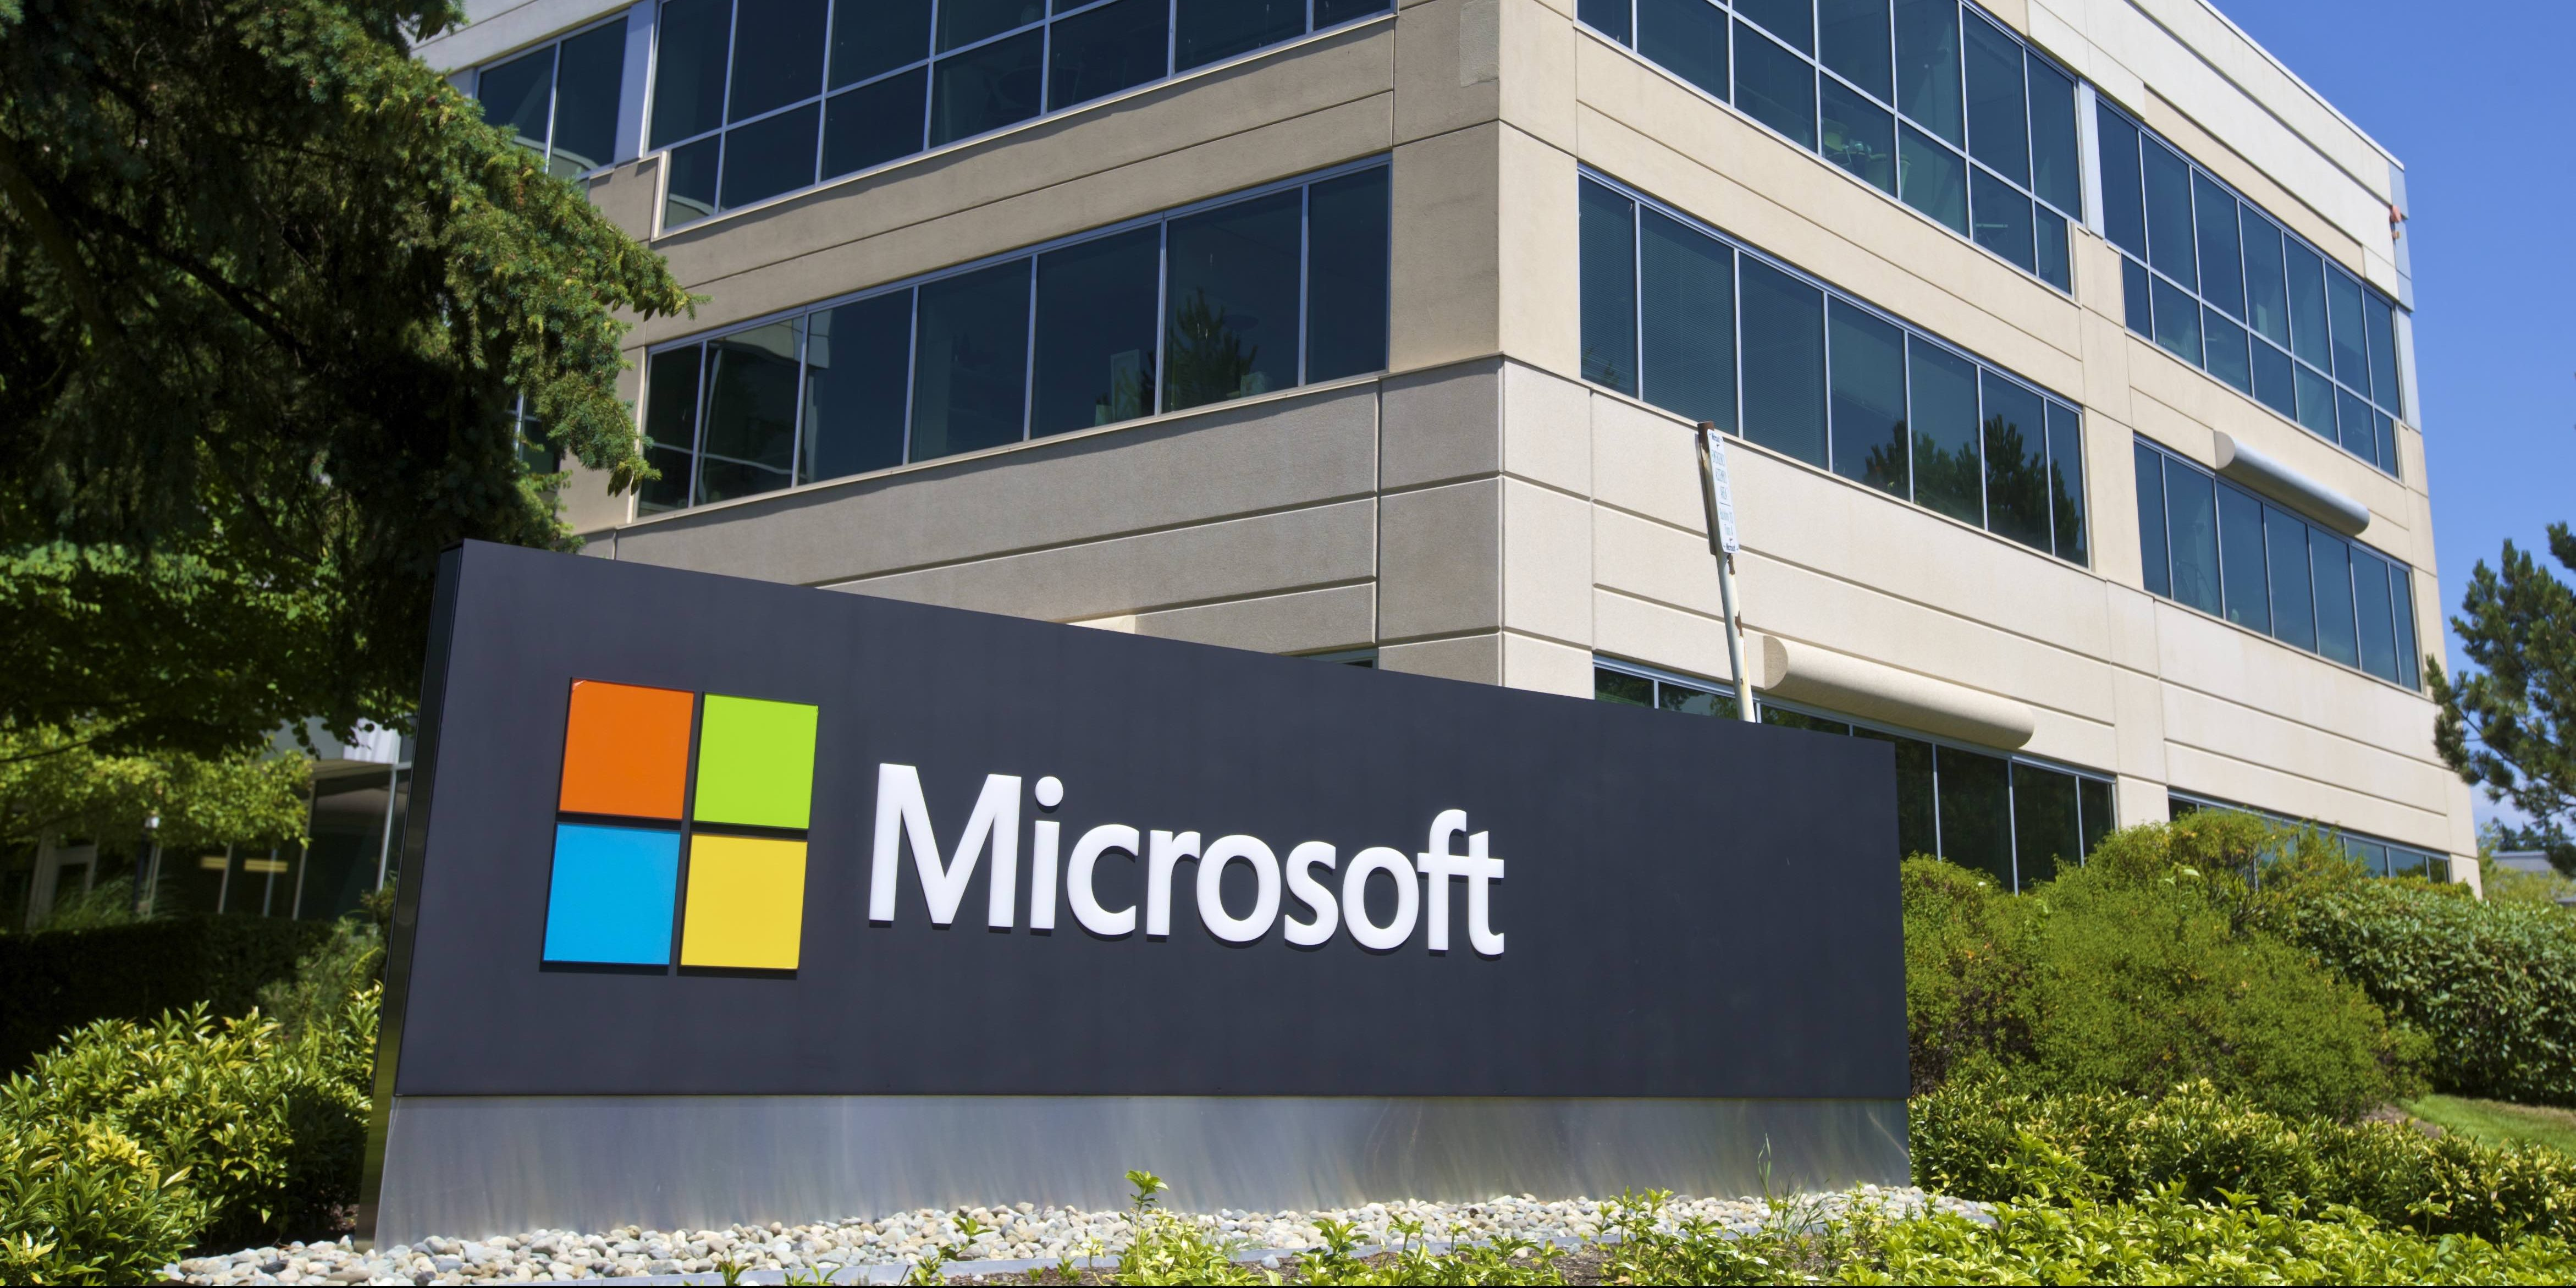 venturebeat.com - Paul Sawers - Microsoft announces industry clouds for finance, manufacturing, and nonprofits